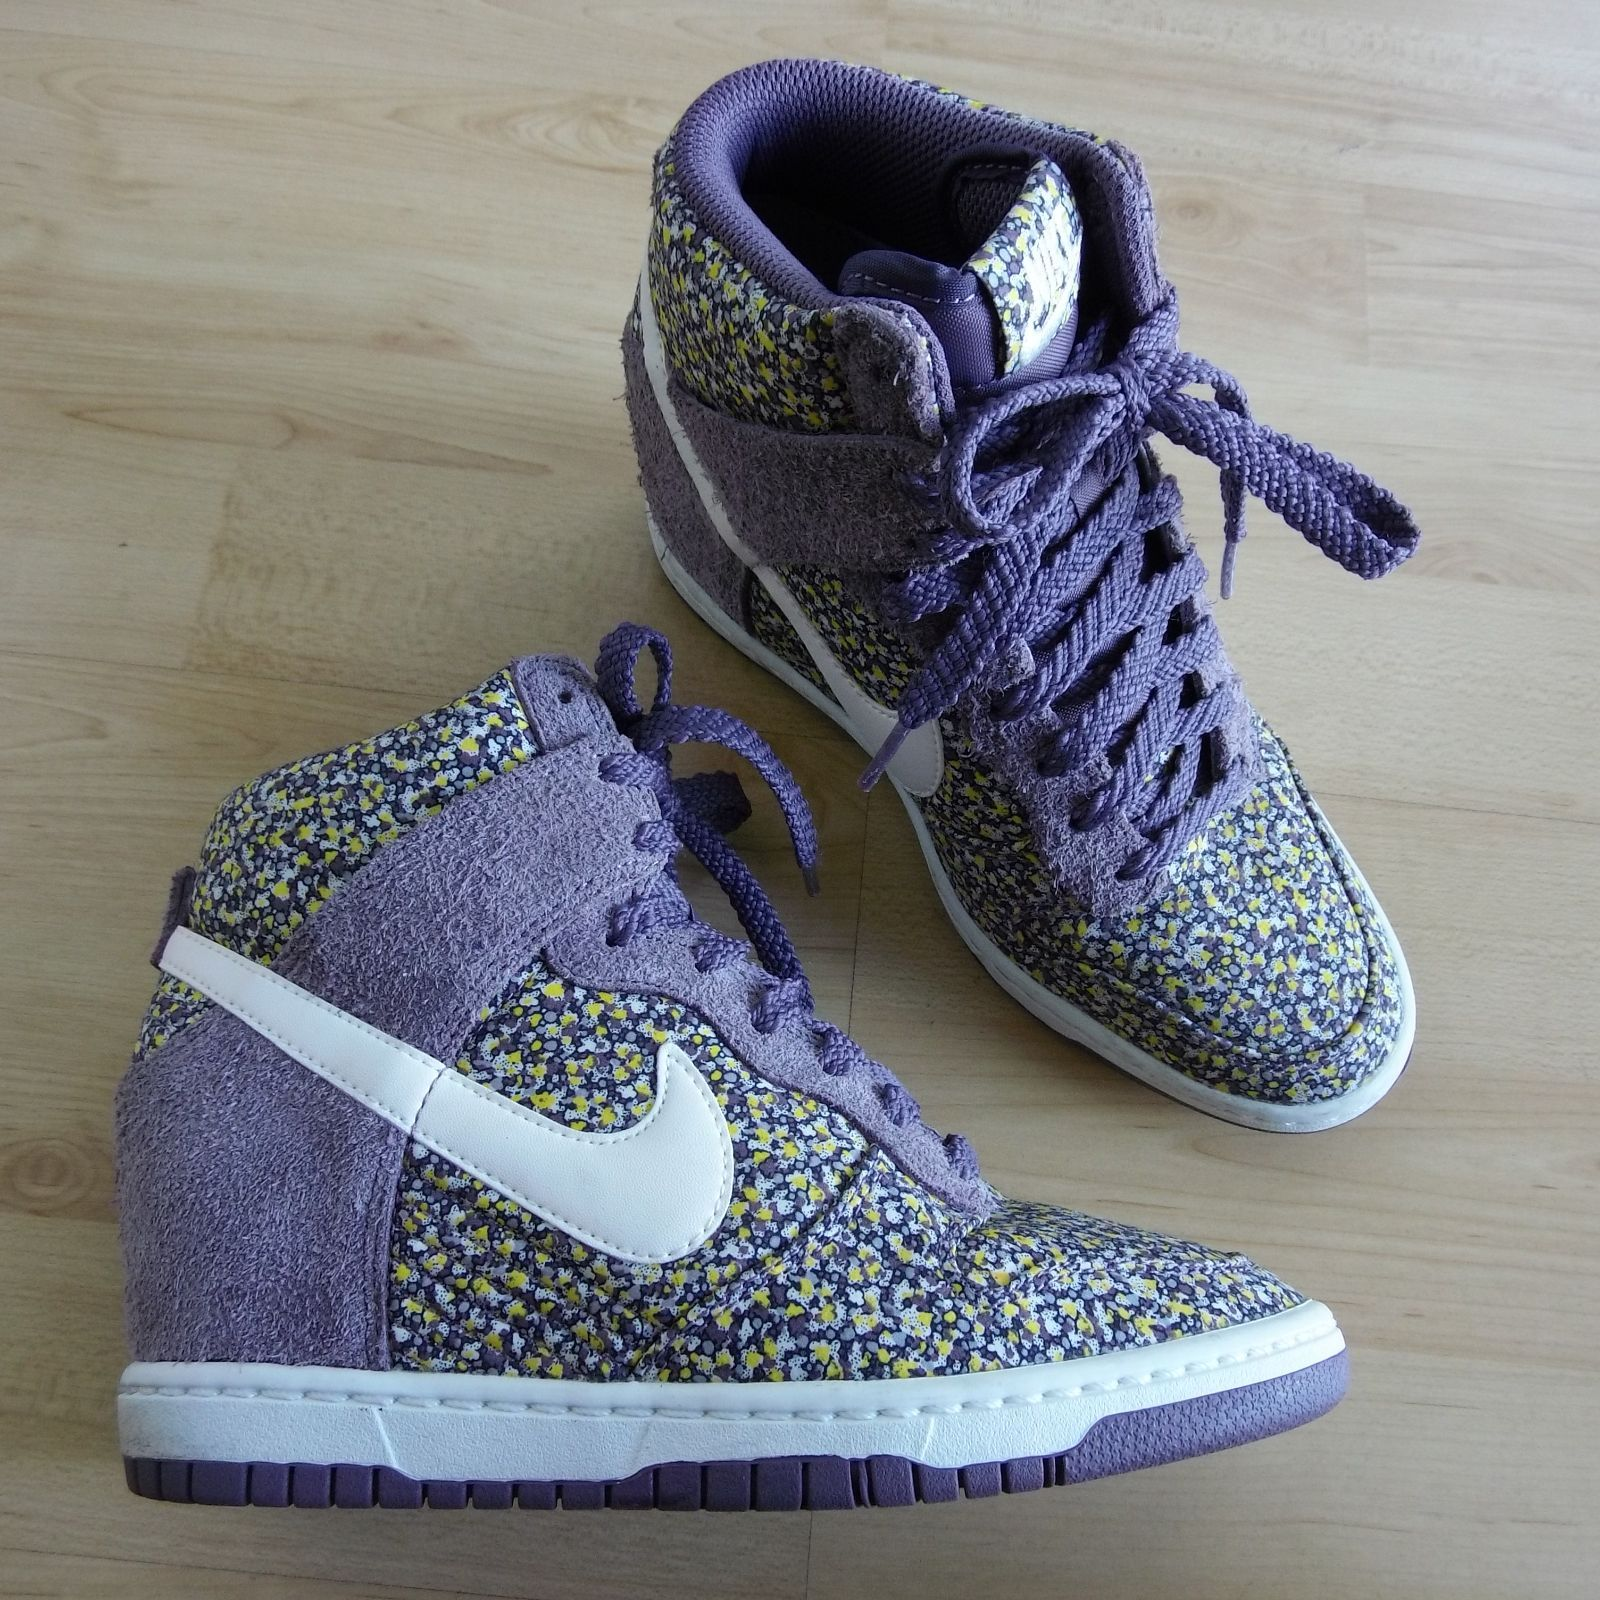 Nike Dunk Sky Hi Liberty Purple Suede and Floral Wedge